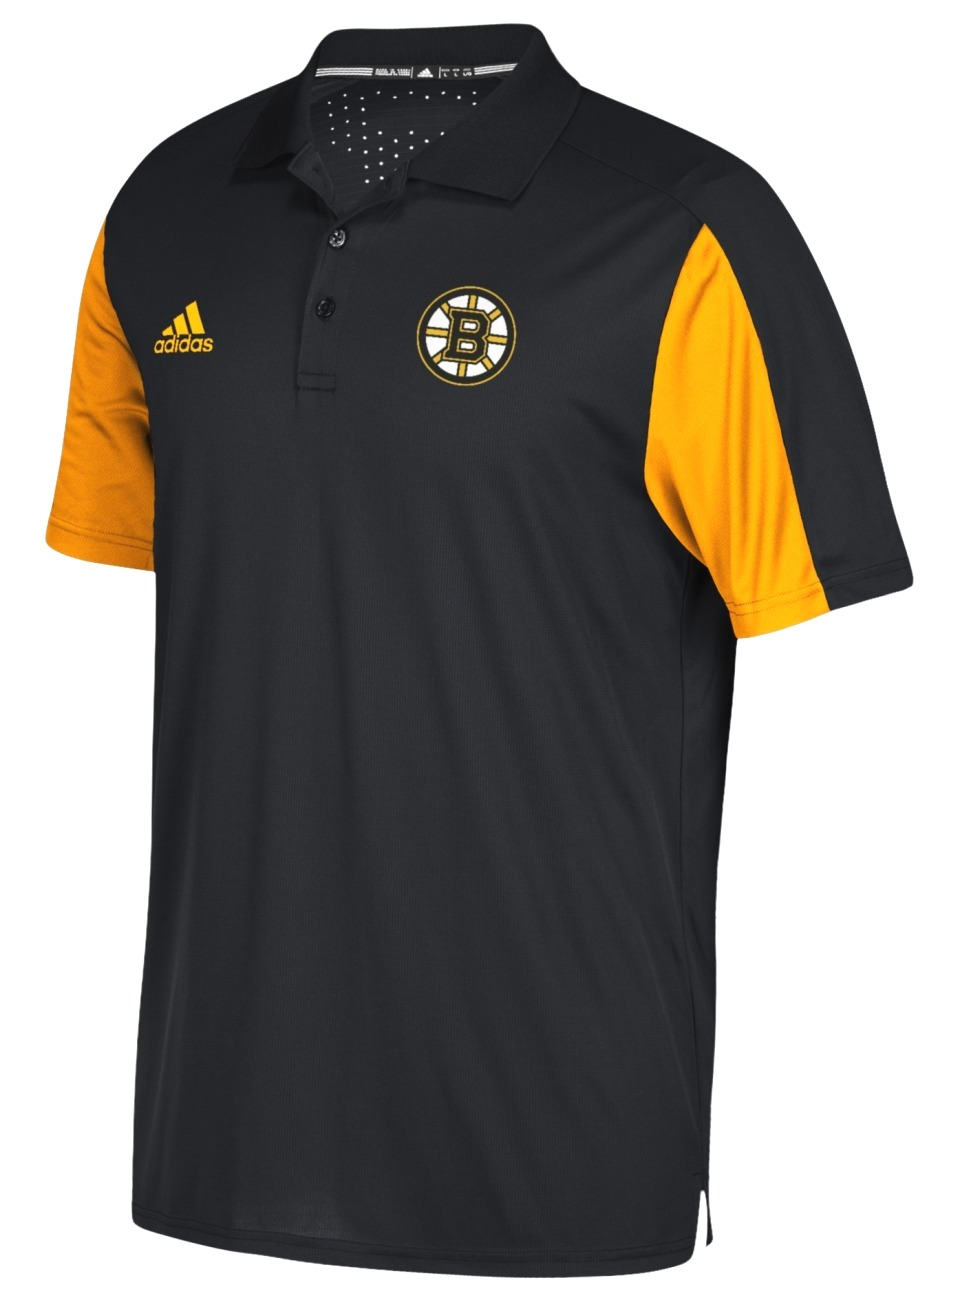 Boston Bruins Adidas NHL Men's 2017 Authentic Game Day Polo Shirt